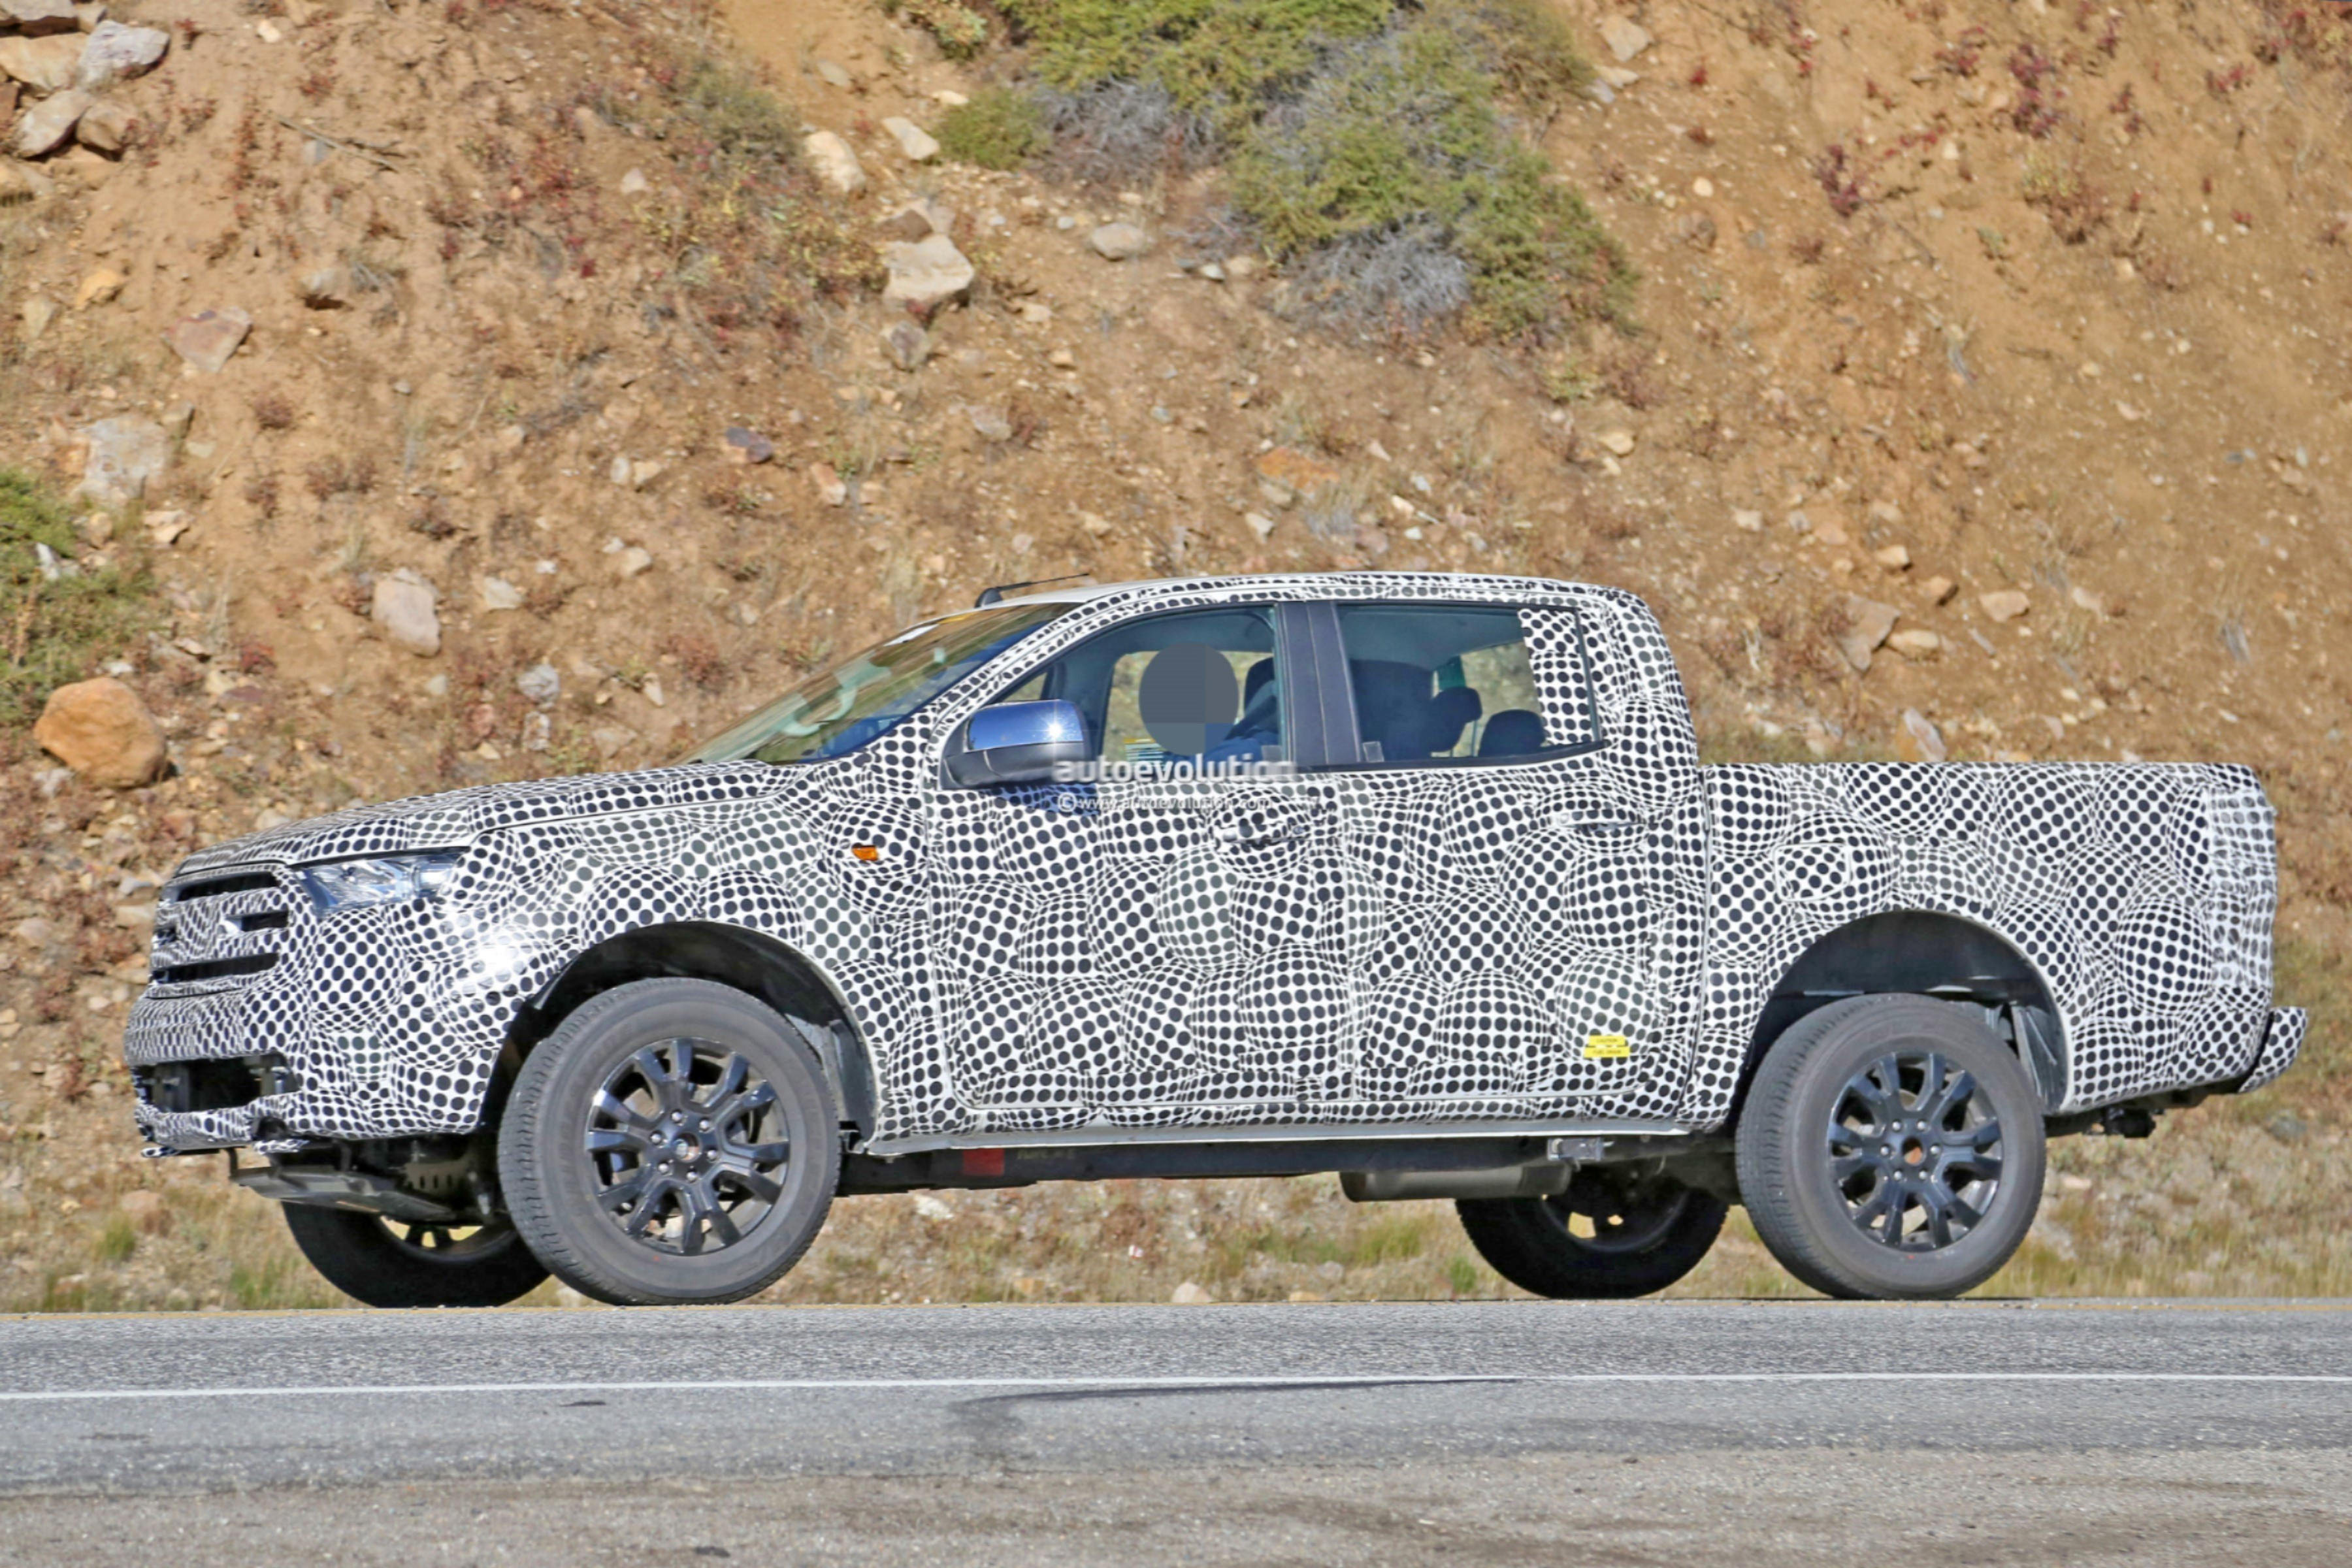 Spyshots: 2019 Ford Ranger Pickup (U.S.-spec) Poses With The Hood Up - autoevolution